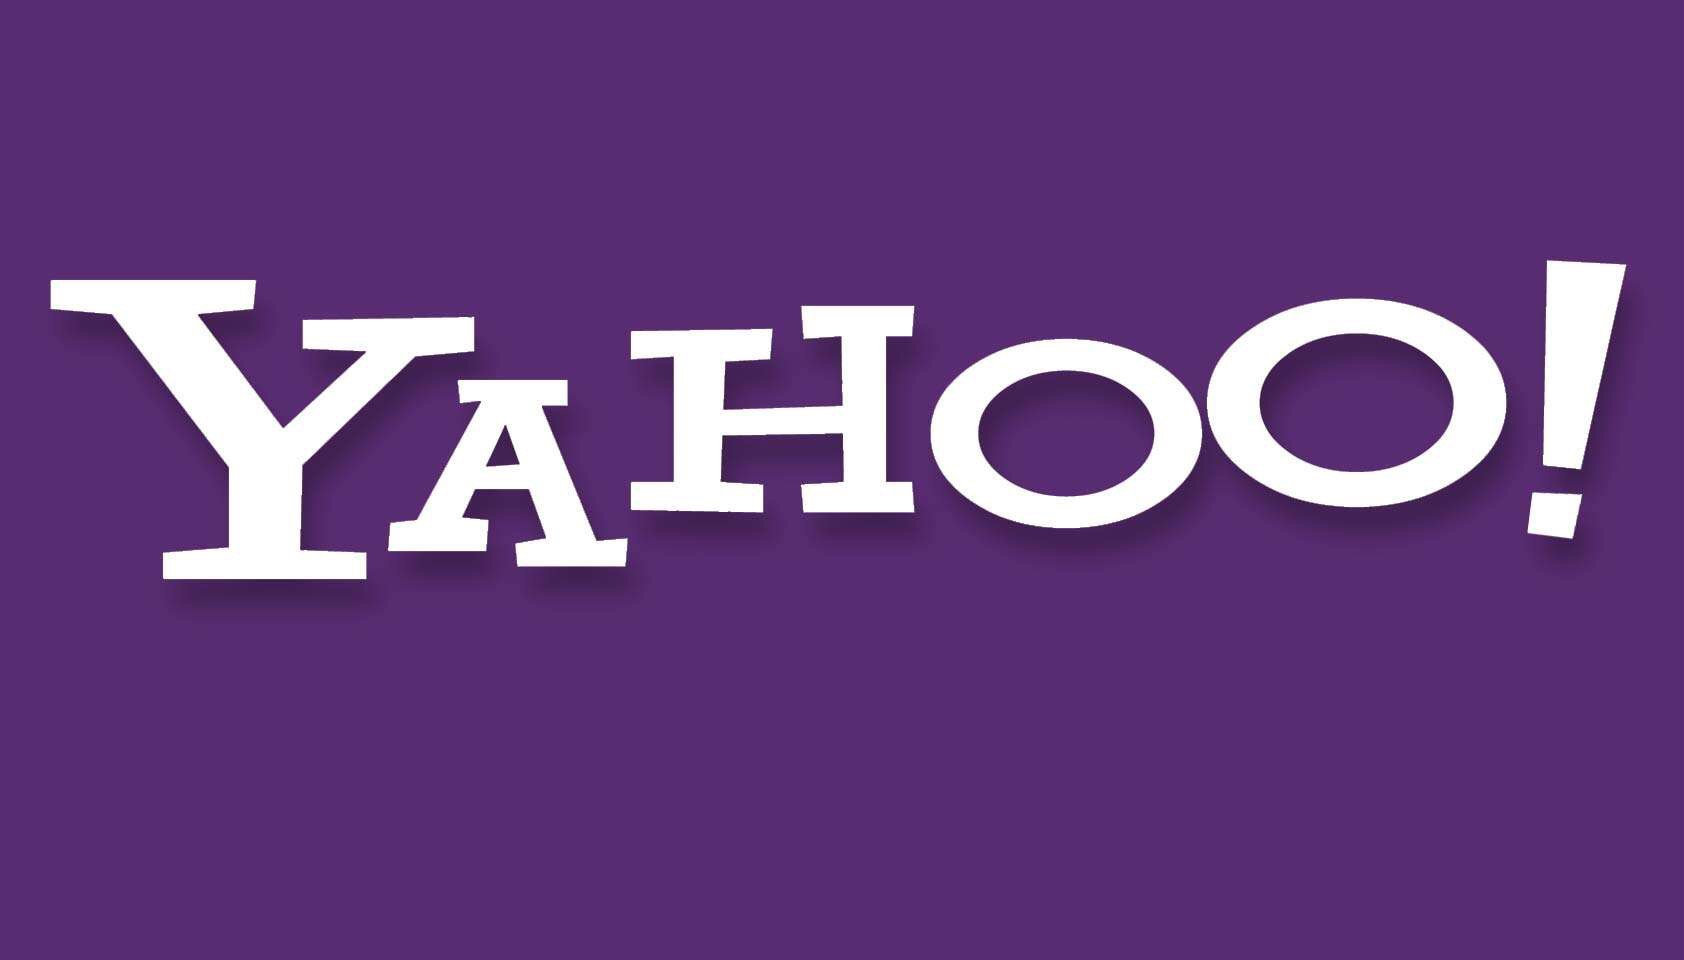 Yahoo: The Decline Of The Mobile Browser Is A Threat To Search http://t.co/KAfzG9jD4F #search #timsabre